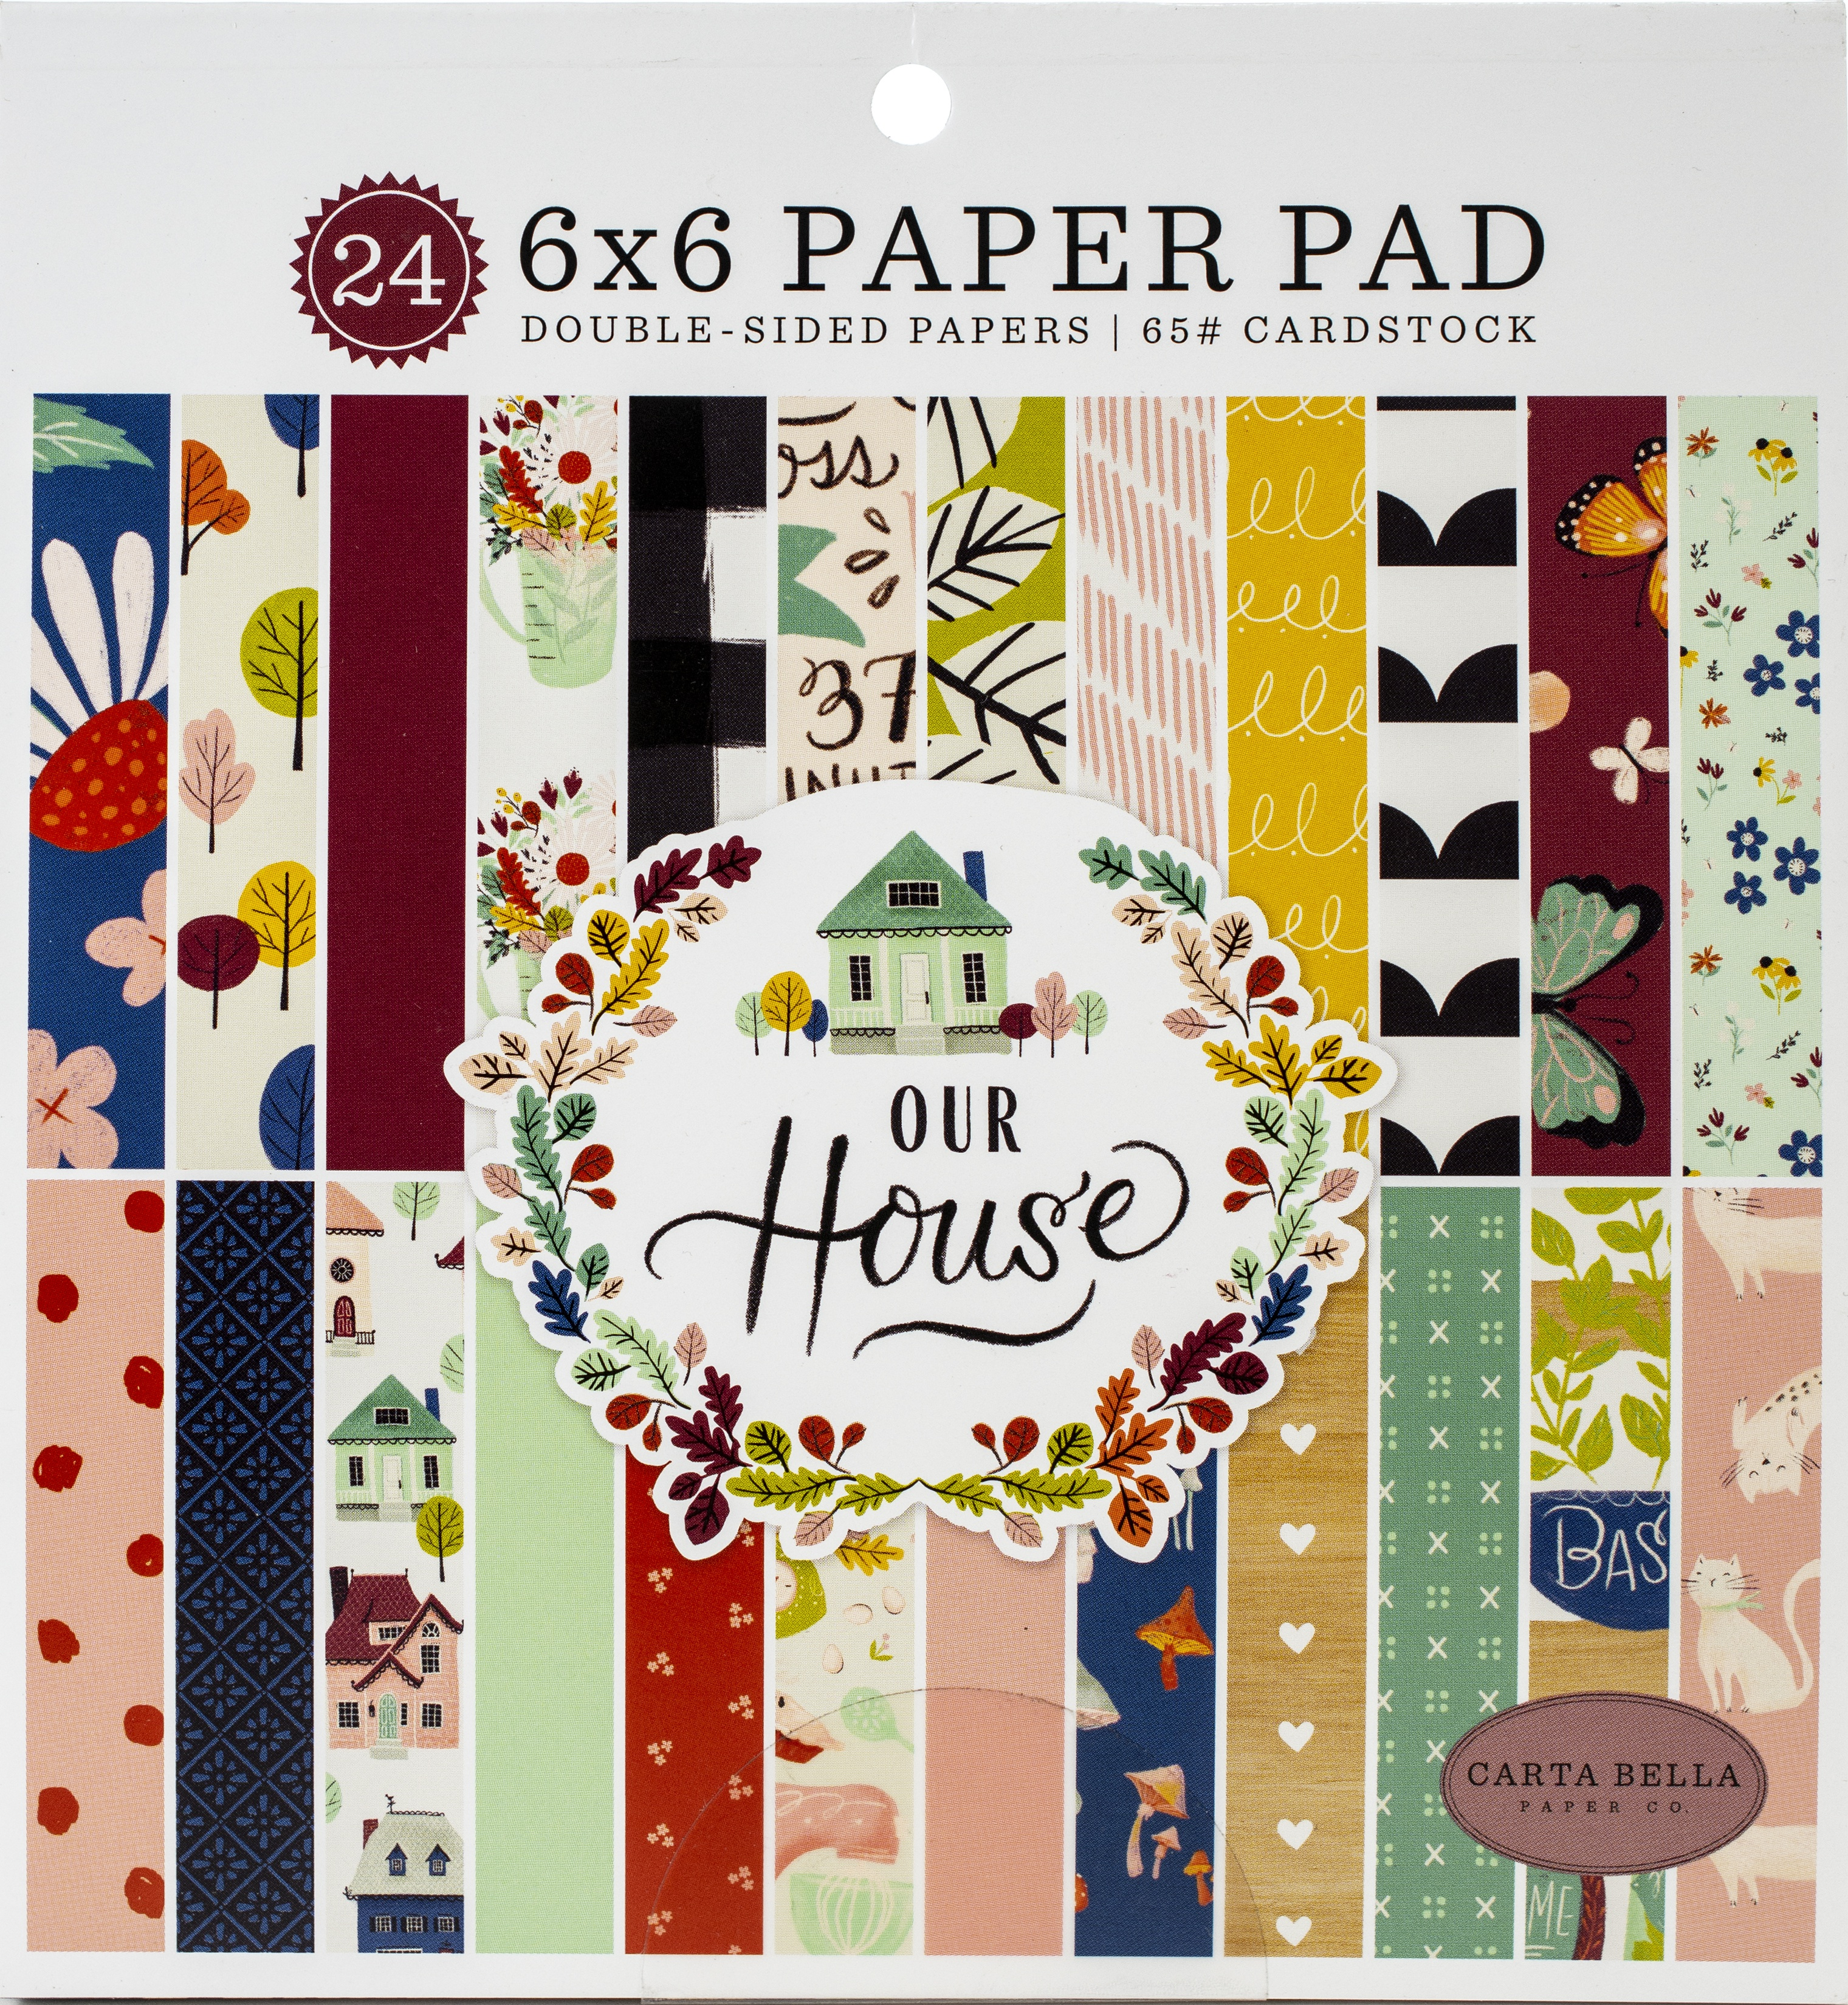 Carta Bella Double-Sided Paper Pad 6X6 24/Pkg-Our House, 12 Designs/2 Each